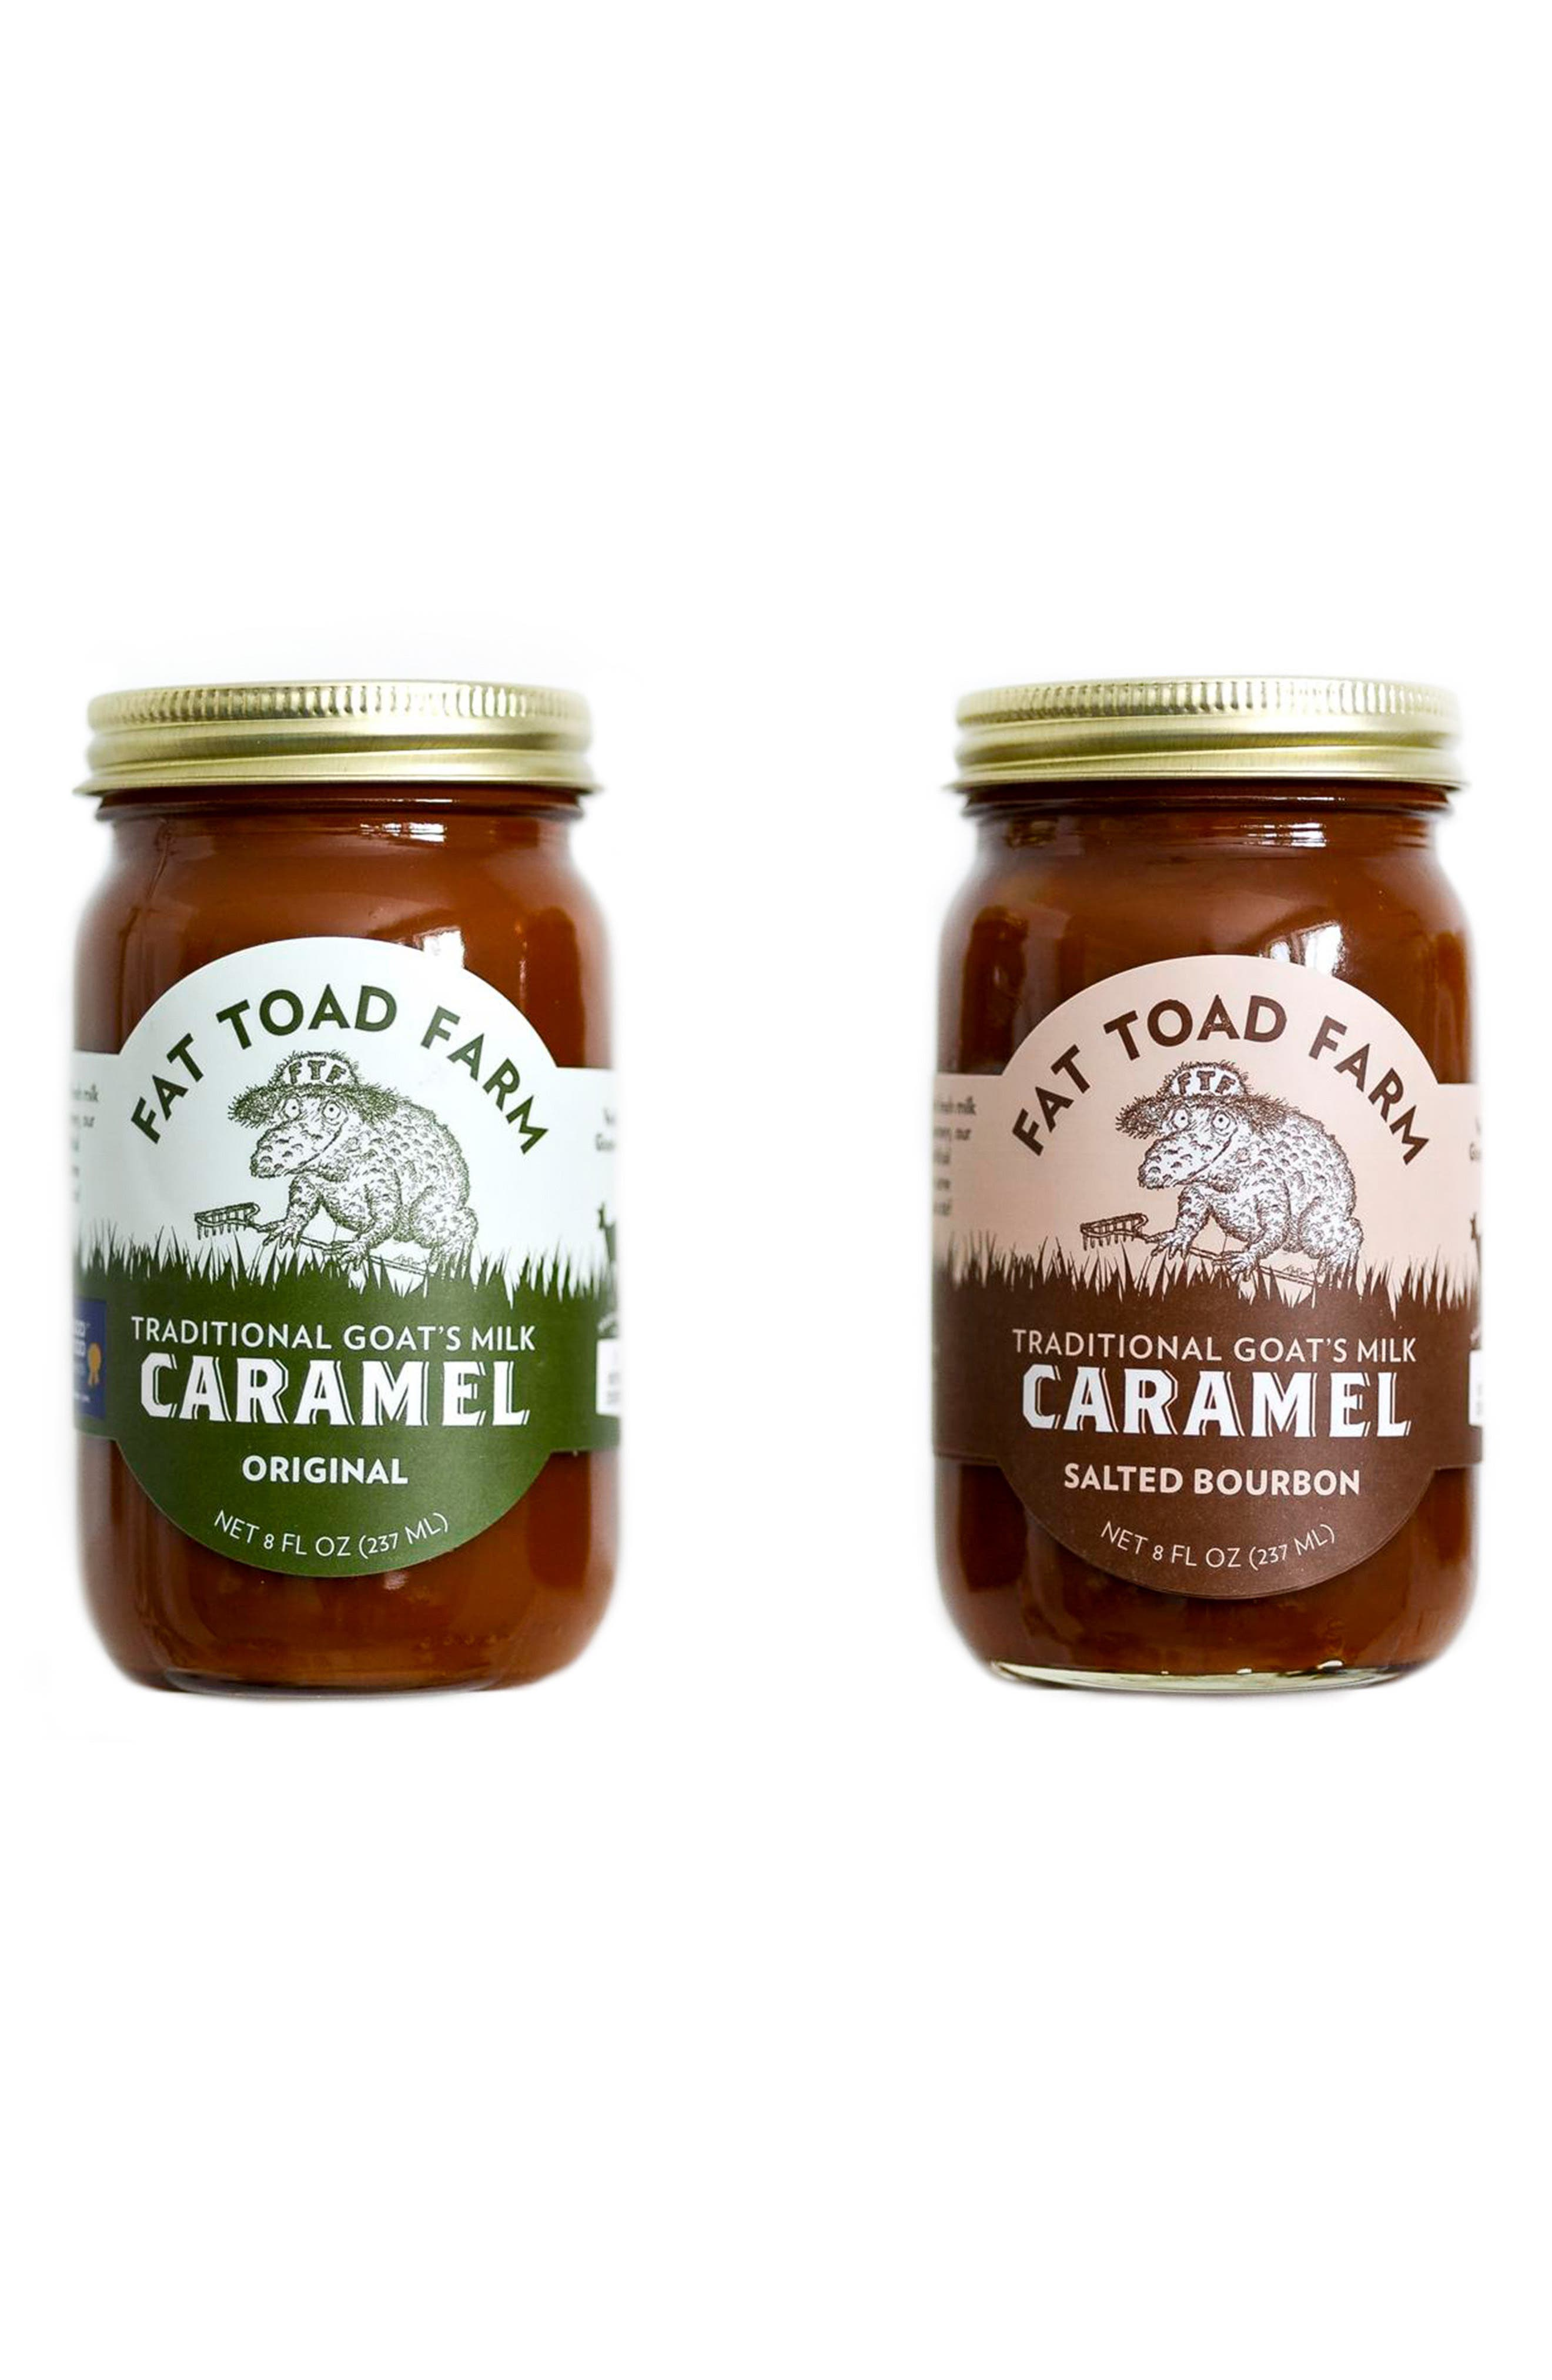 Fat Toad Farm Classic Goat's Milk Caramel Duo